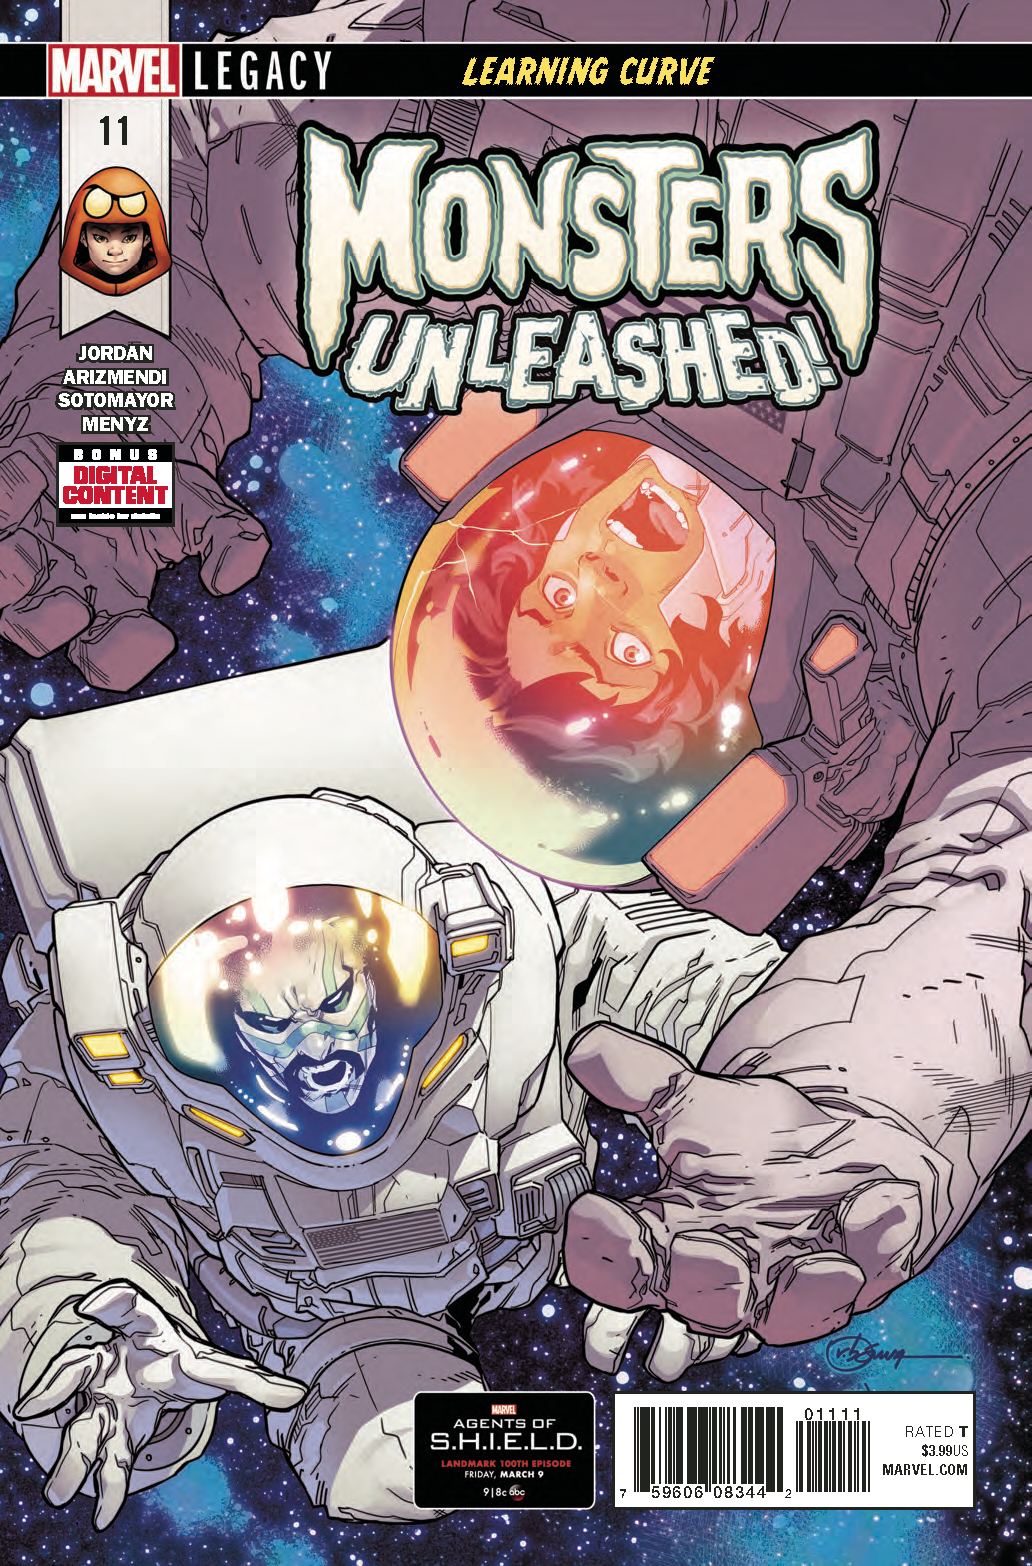 MONSTERS UNLEASHED #11 LEG